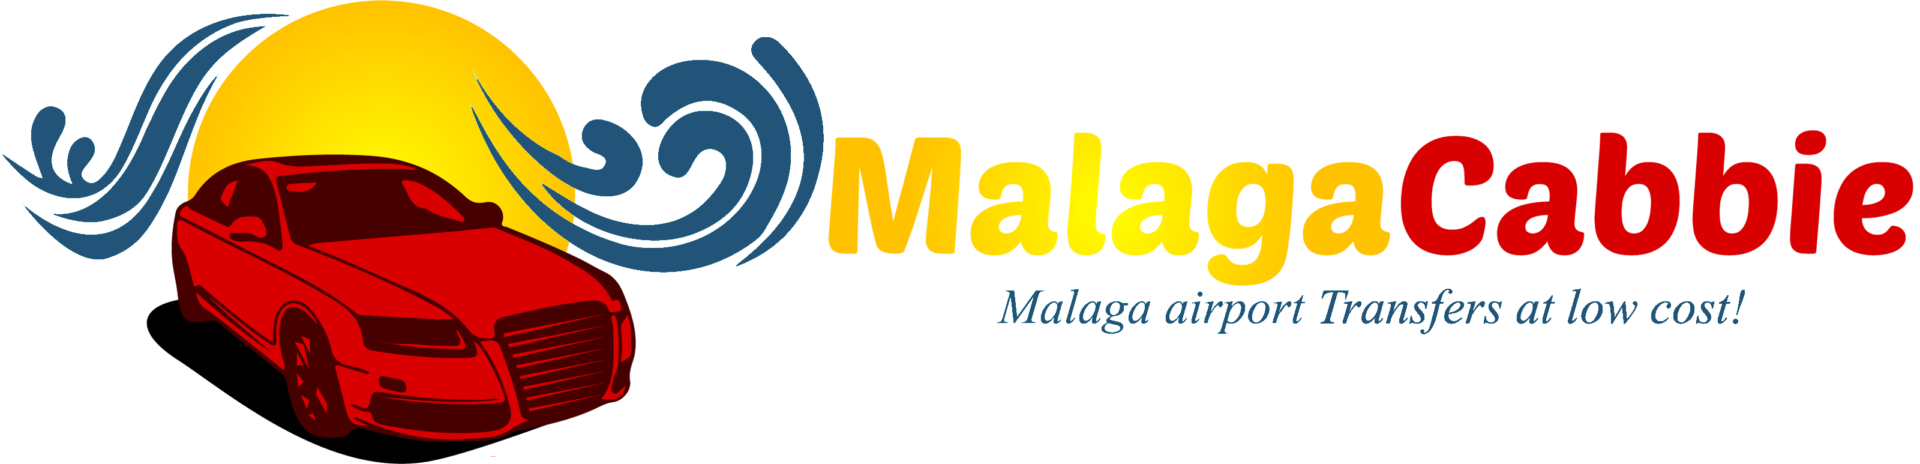 Malaga Cabbie | Choose the best vehicle for your transfer - Malaga Cabbie